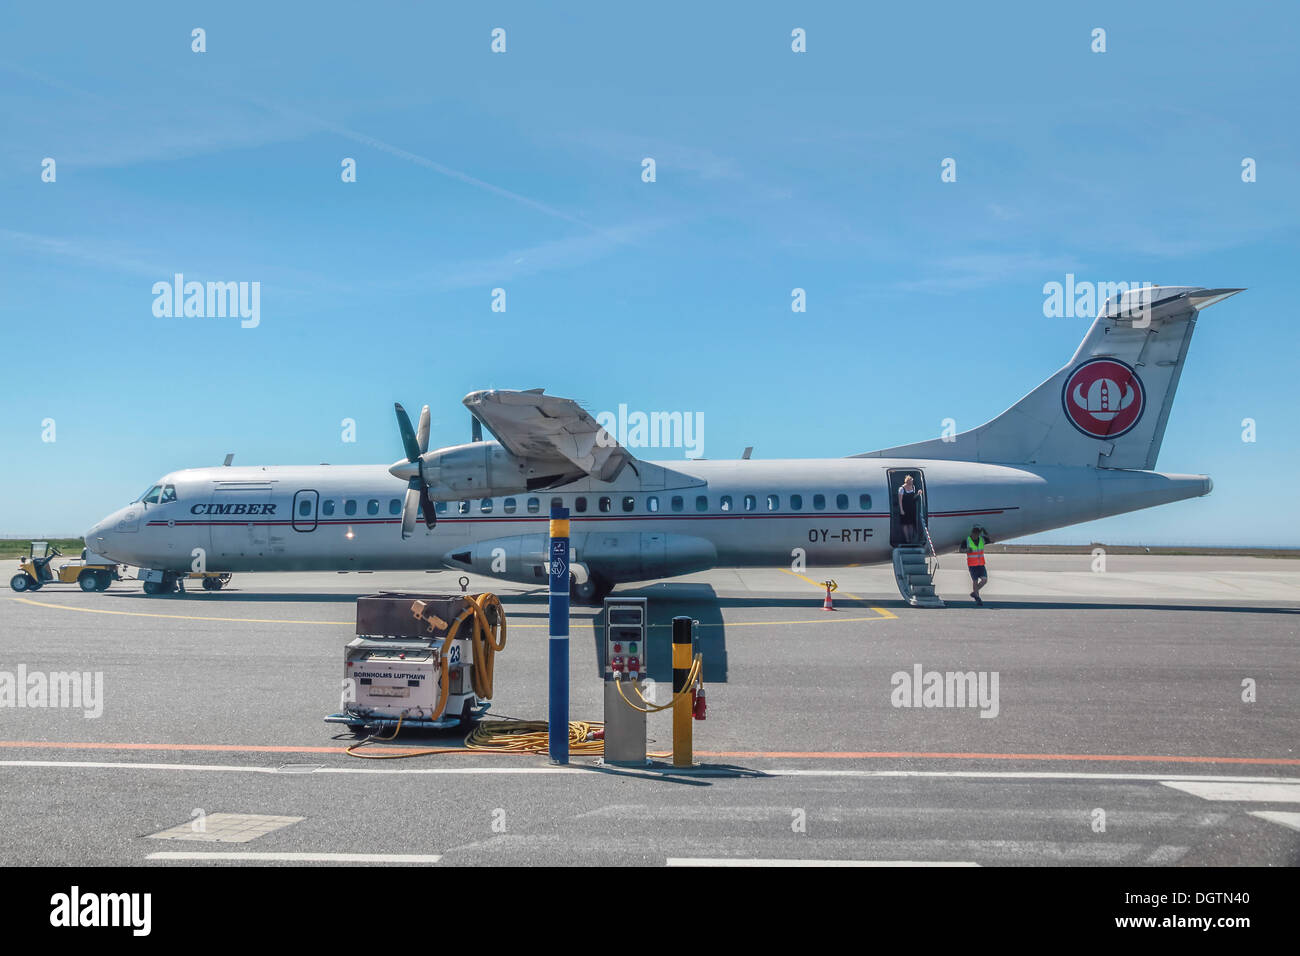 Plane of the airline Cimber Sterling on the airport of Ronne, Bornholm, Denmark - Stock Image